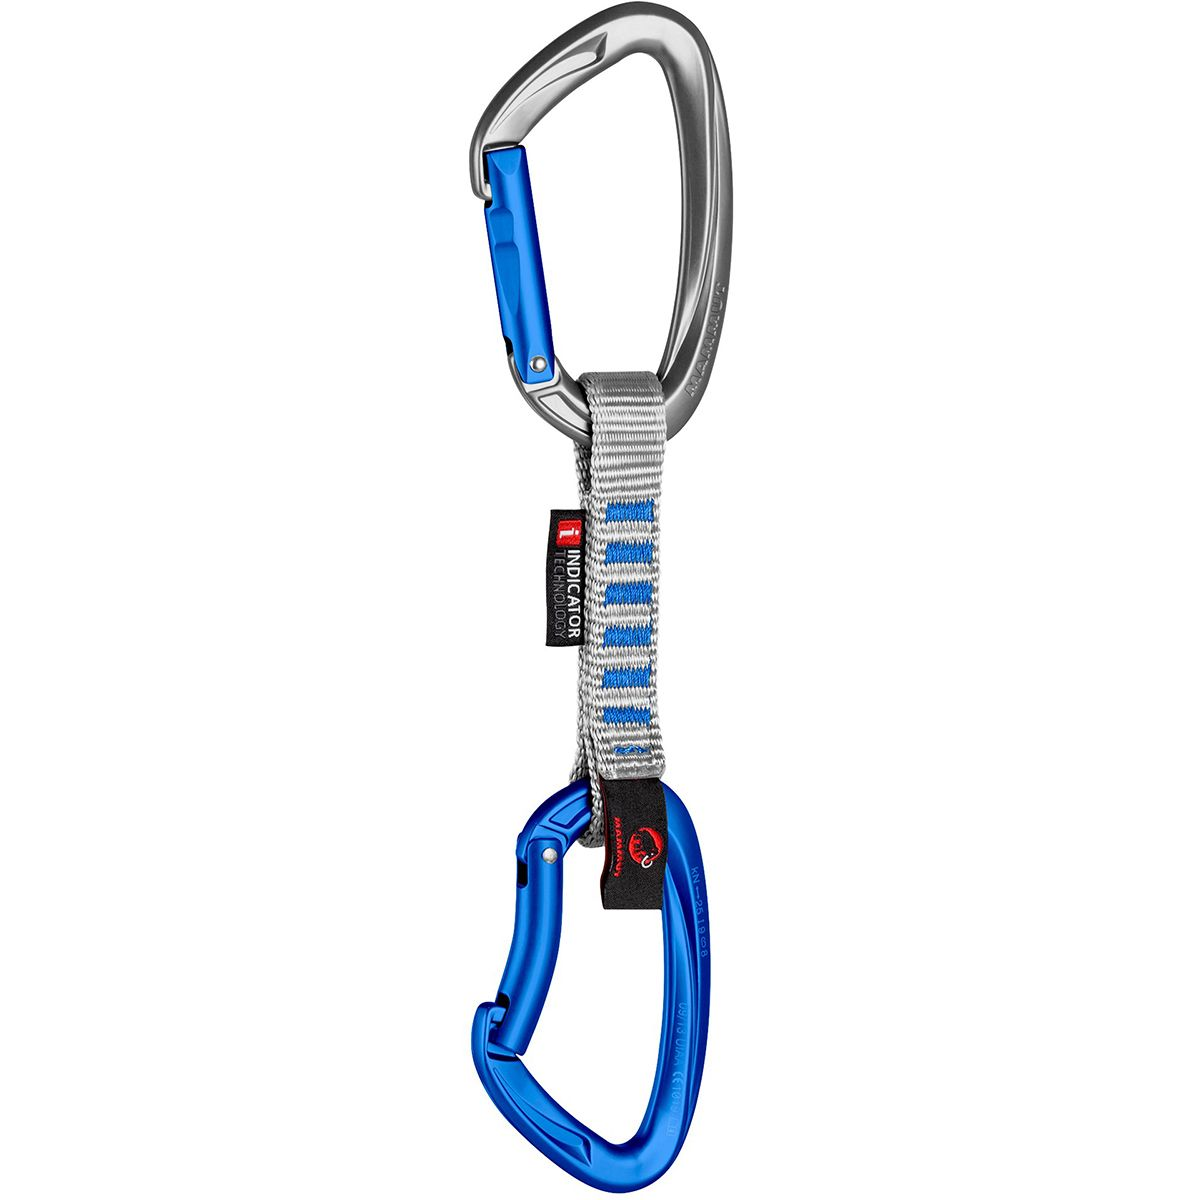 Mammut Crag Indicator Express Quickdraw Straight Gate/Bent Gate, Silver, 10cm MAM011P-STGAGASI-S10CM